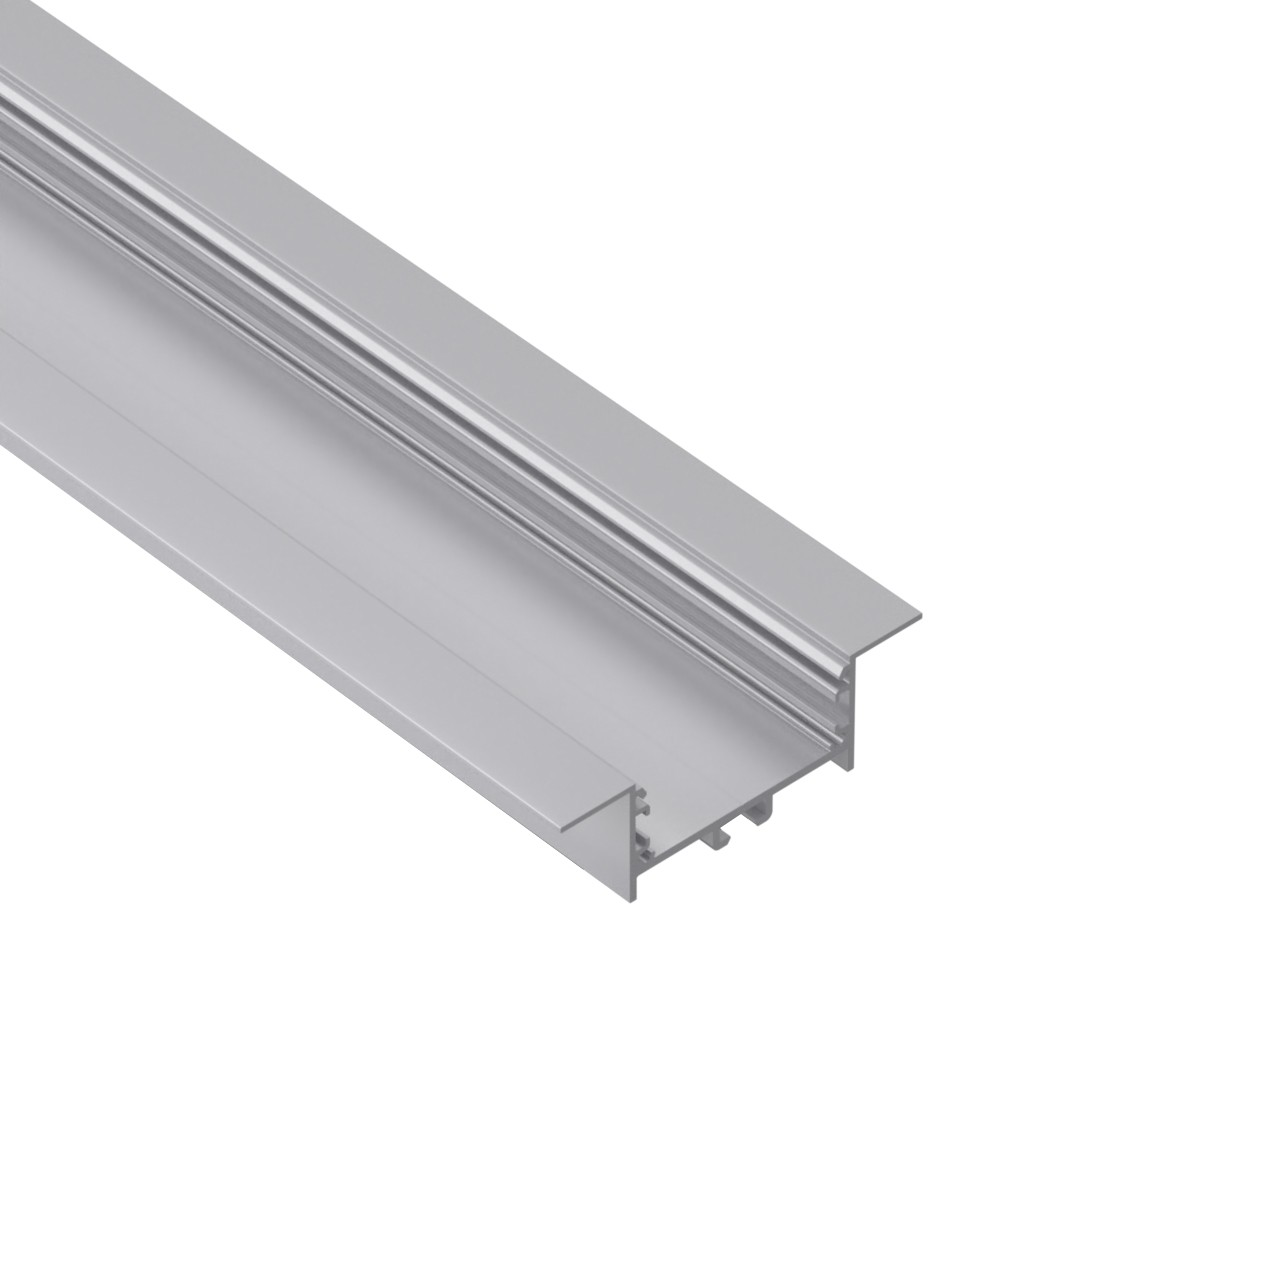 ER50-2 50mm wide recessed led extrusion profile 80x25mm